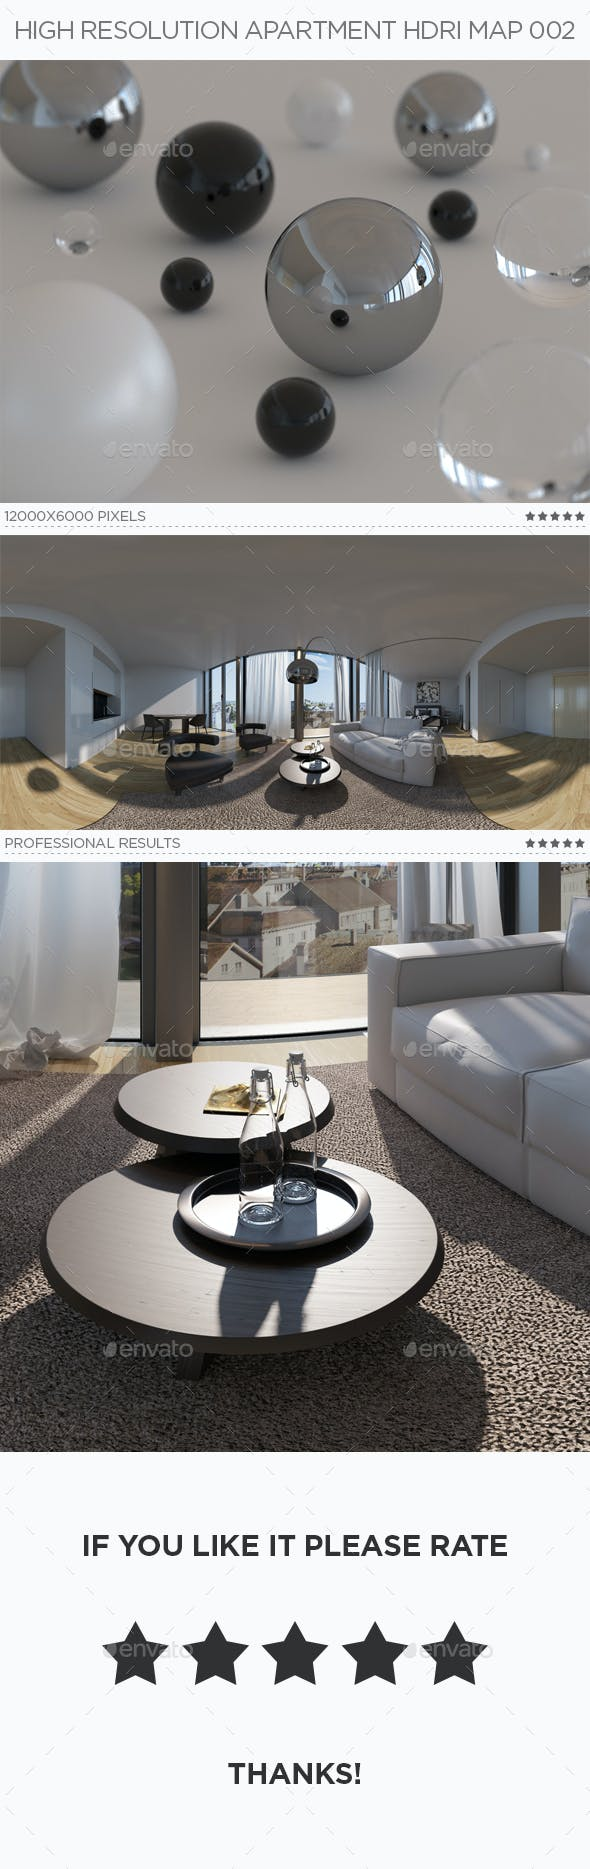 High Resolution Apartment HDRi Map 002 - 3DOcean Item for Sale